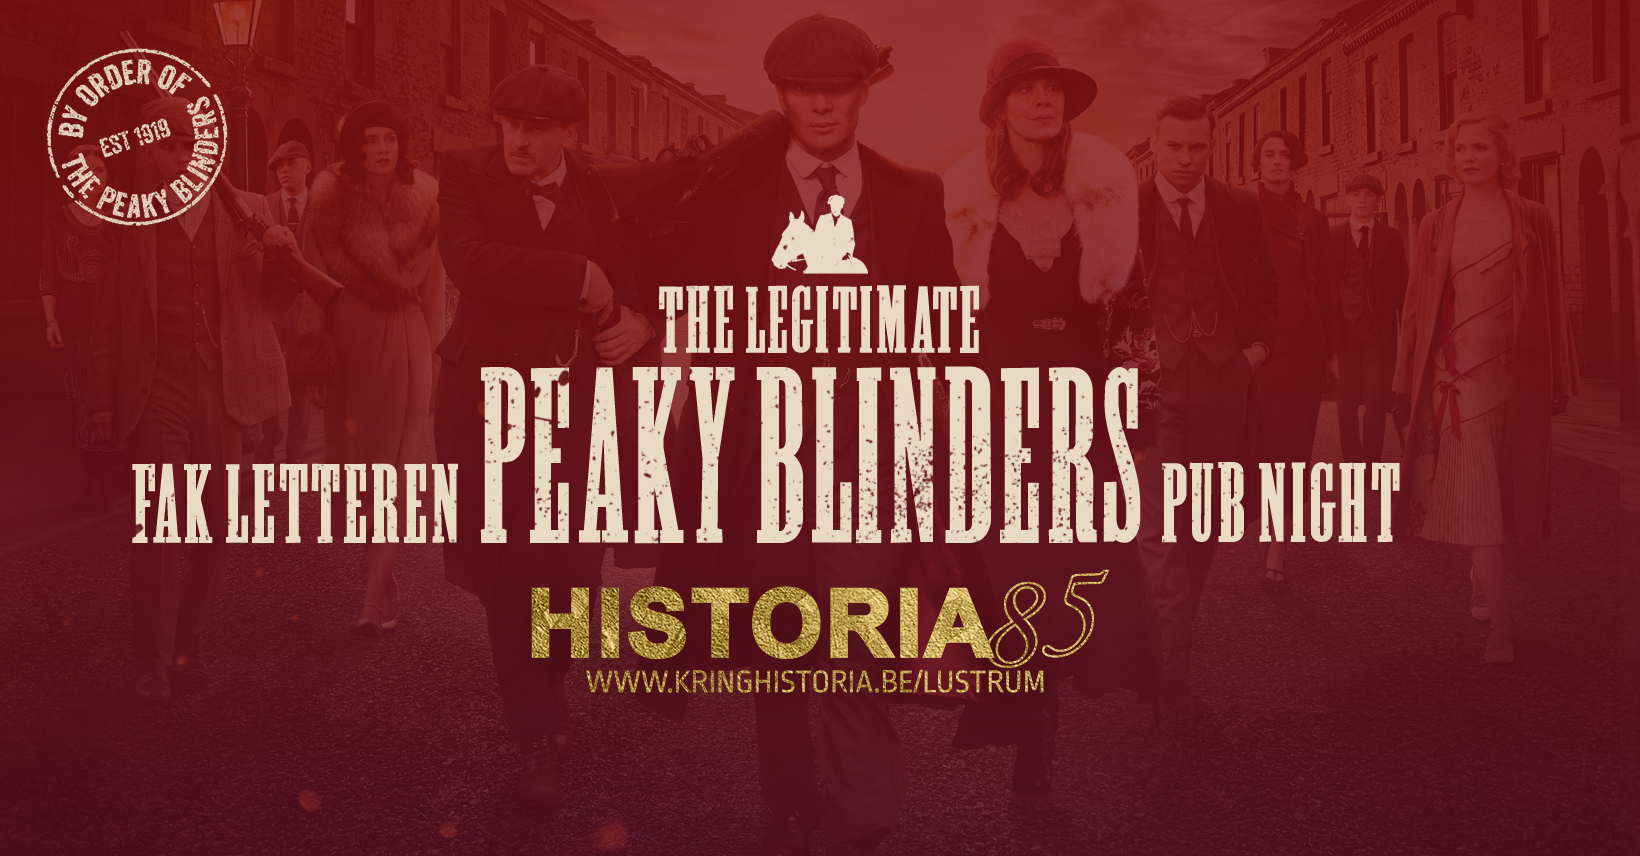 Peaky Blinders Pub Night ⎢Kring Historia 85